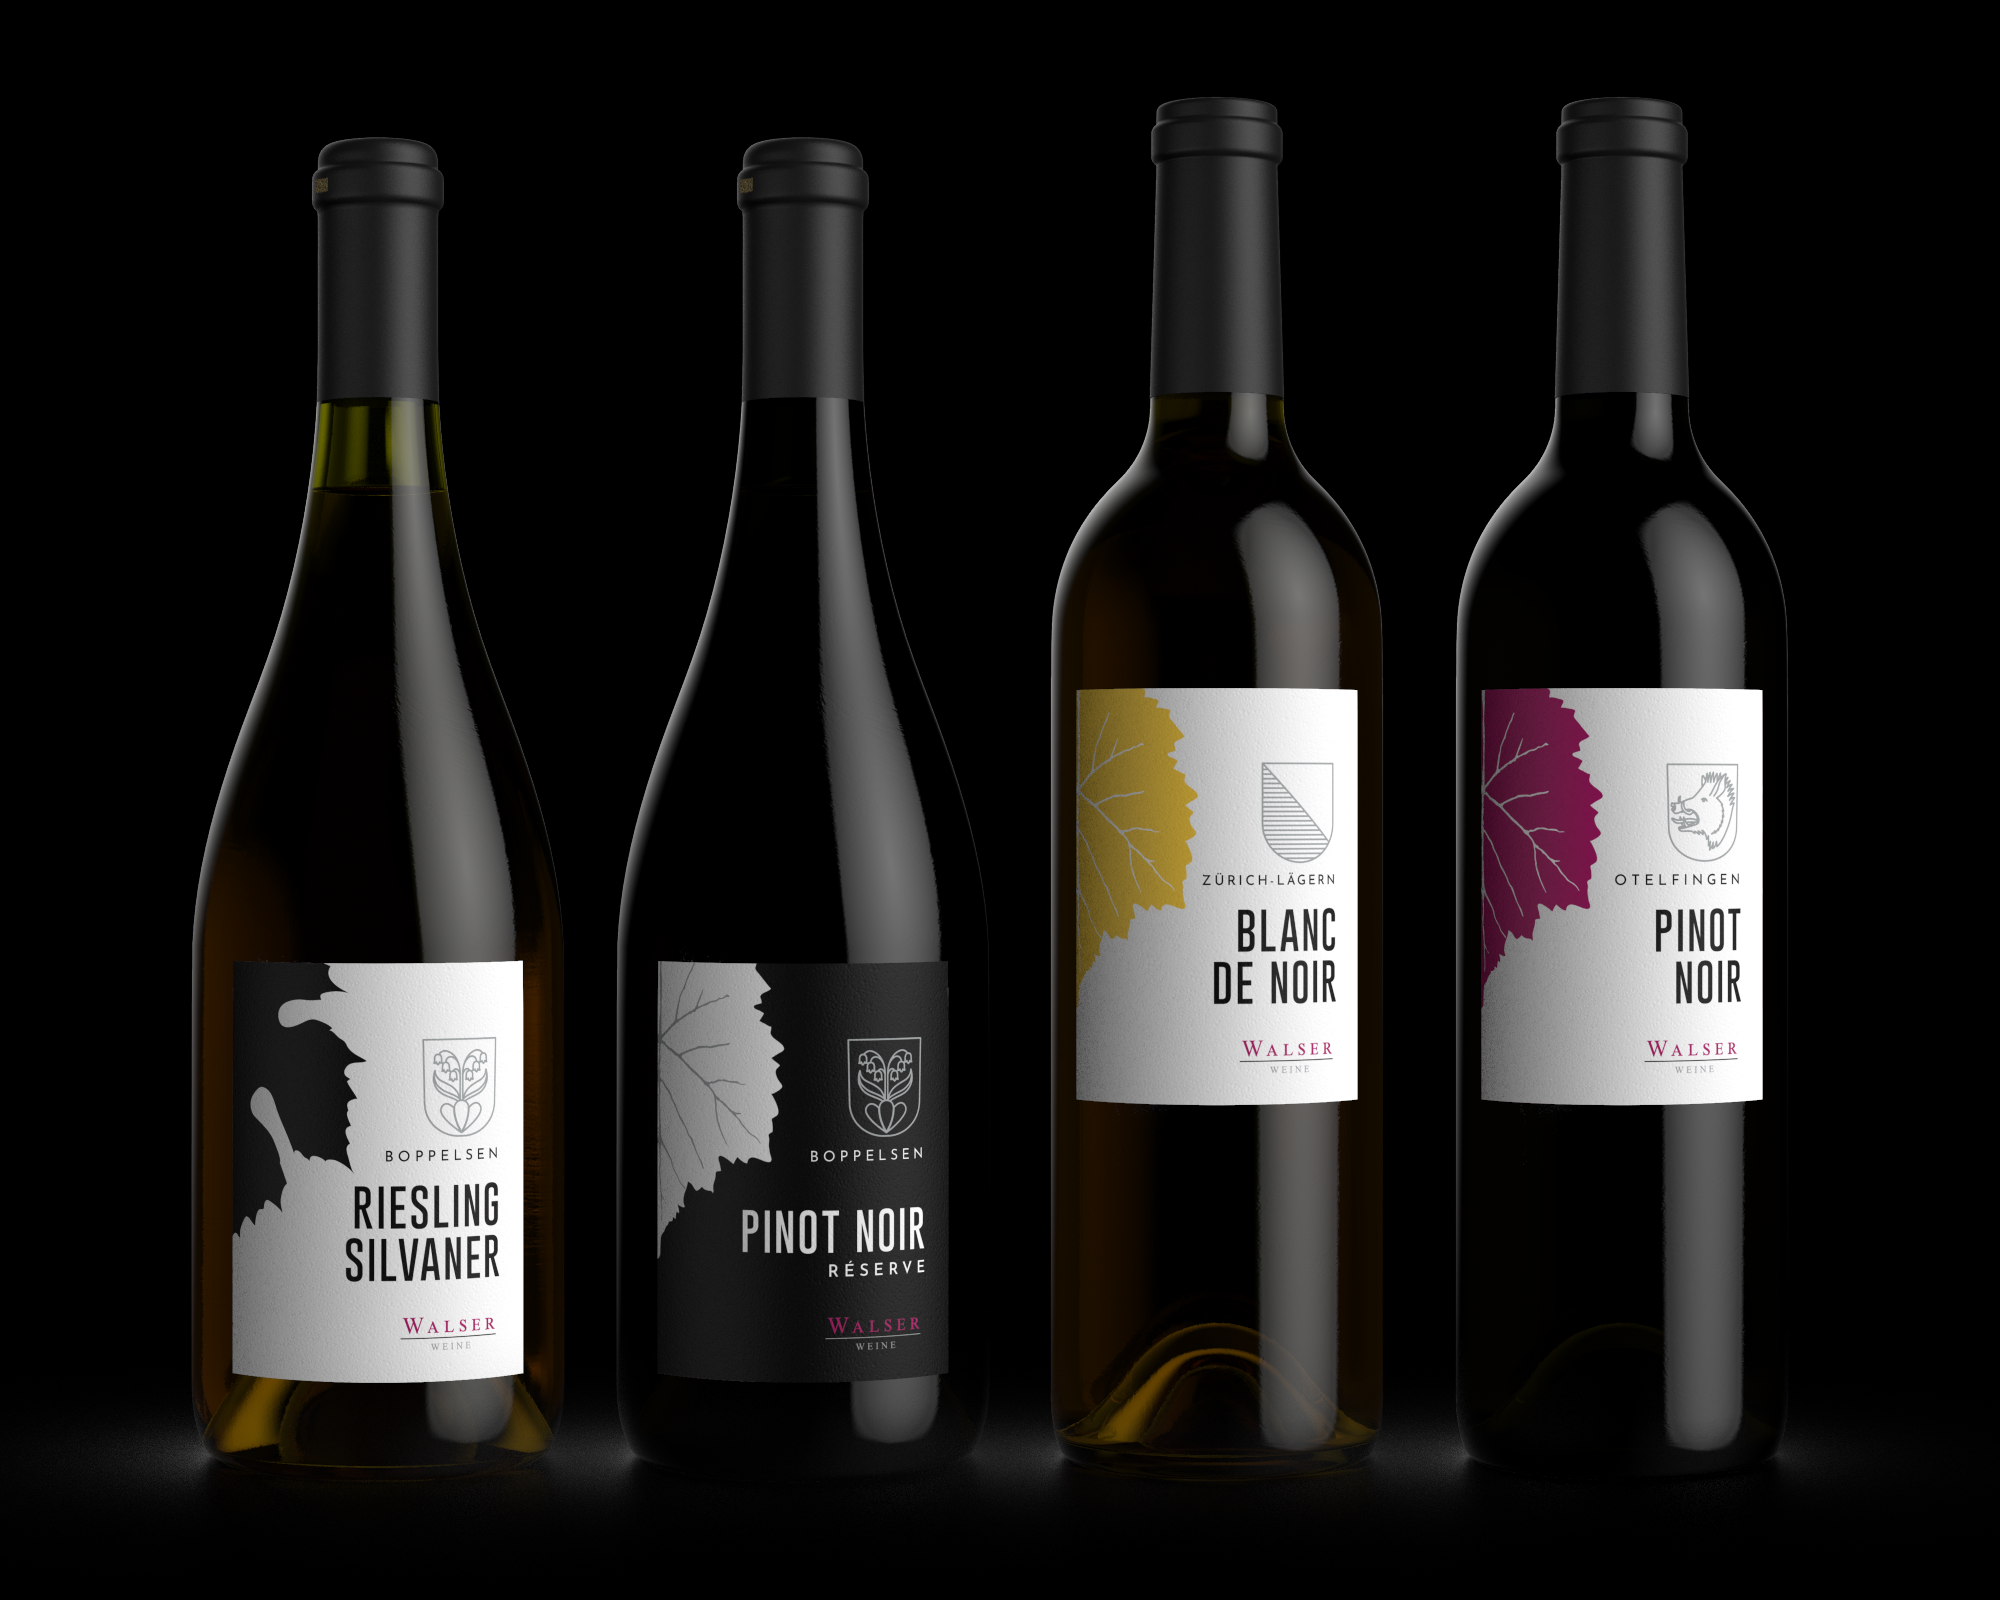 two new wines